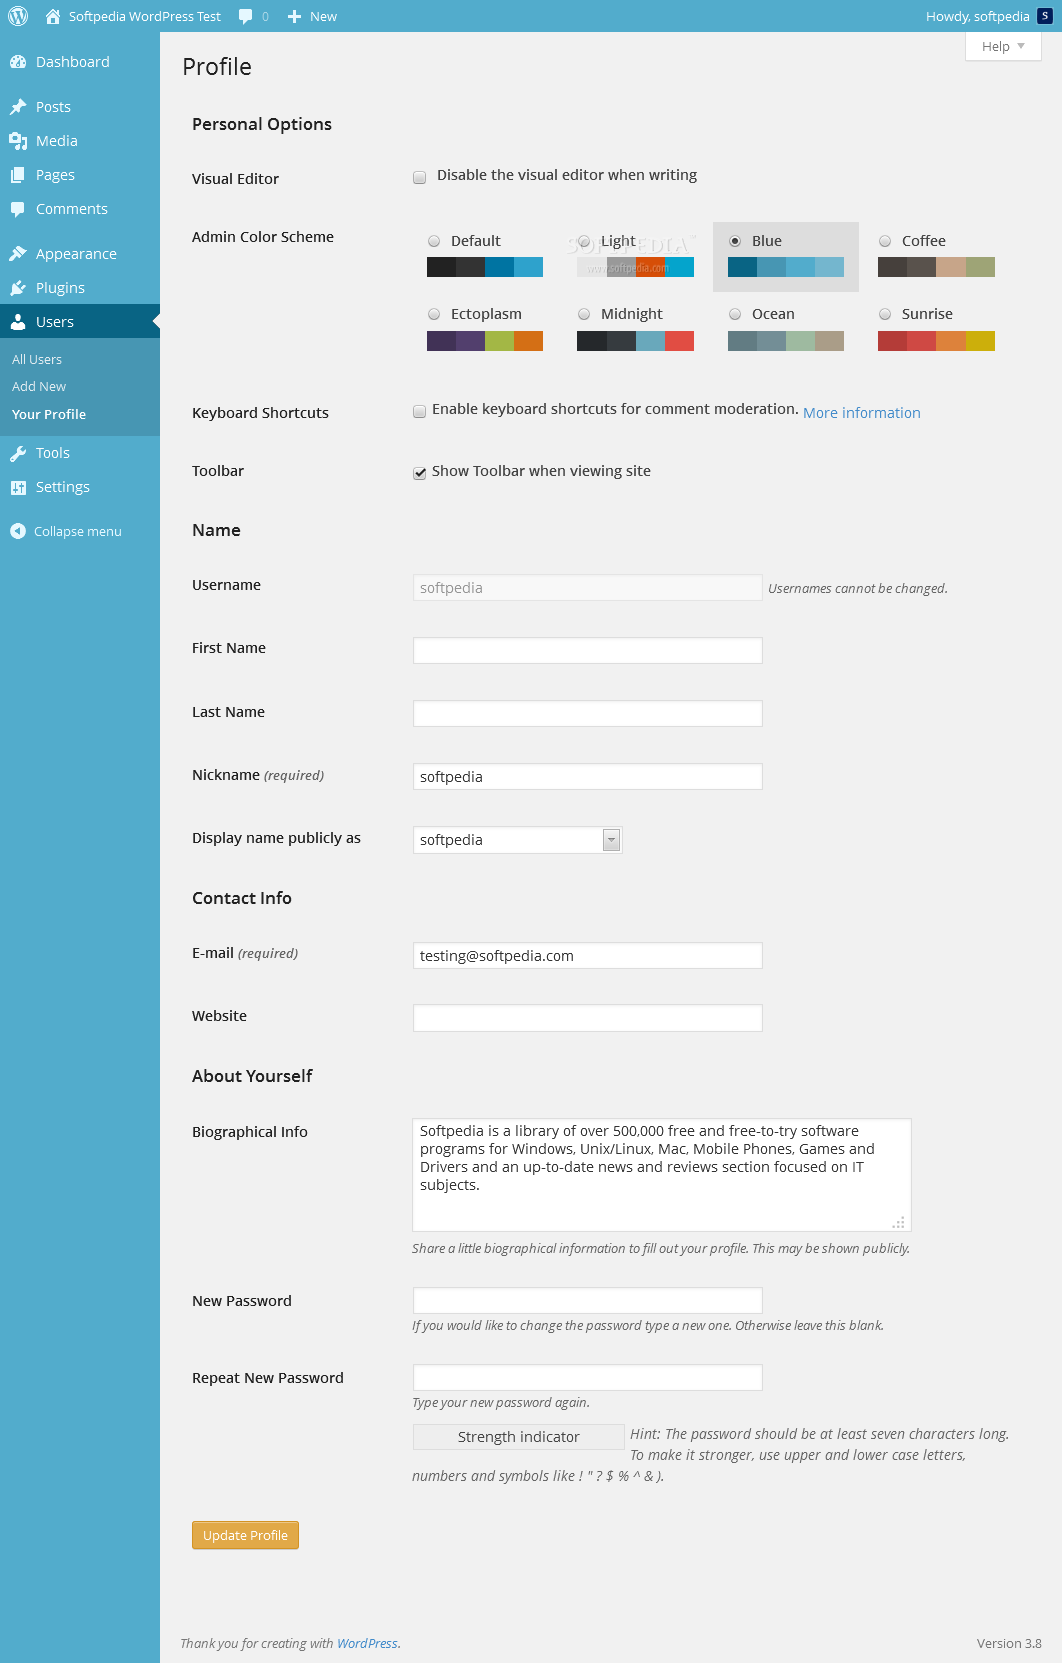 WordPress - A light blue theme is also included